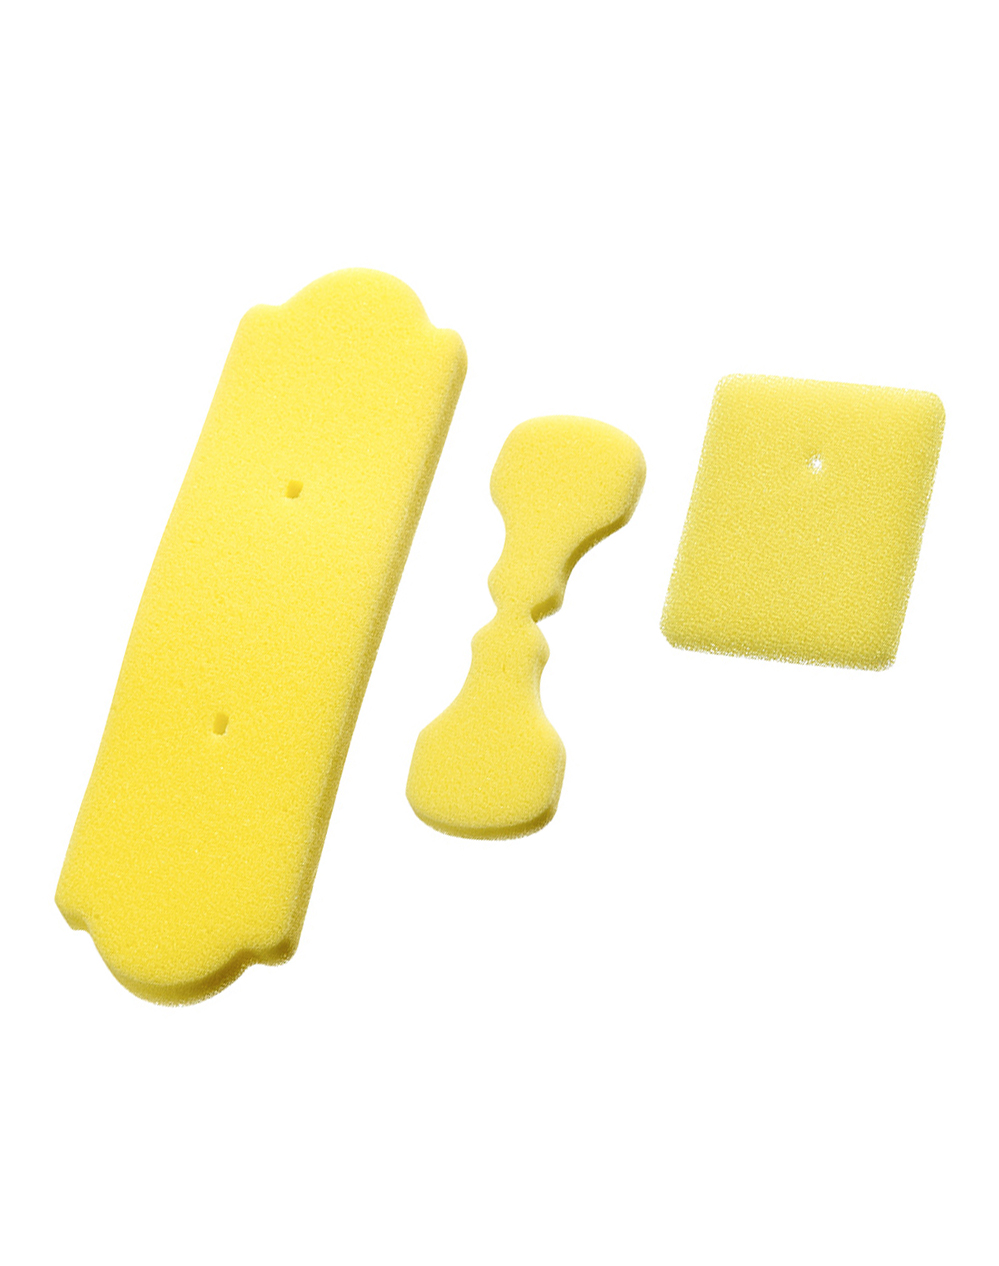 Sponge Replacement Pack